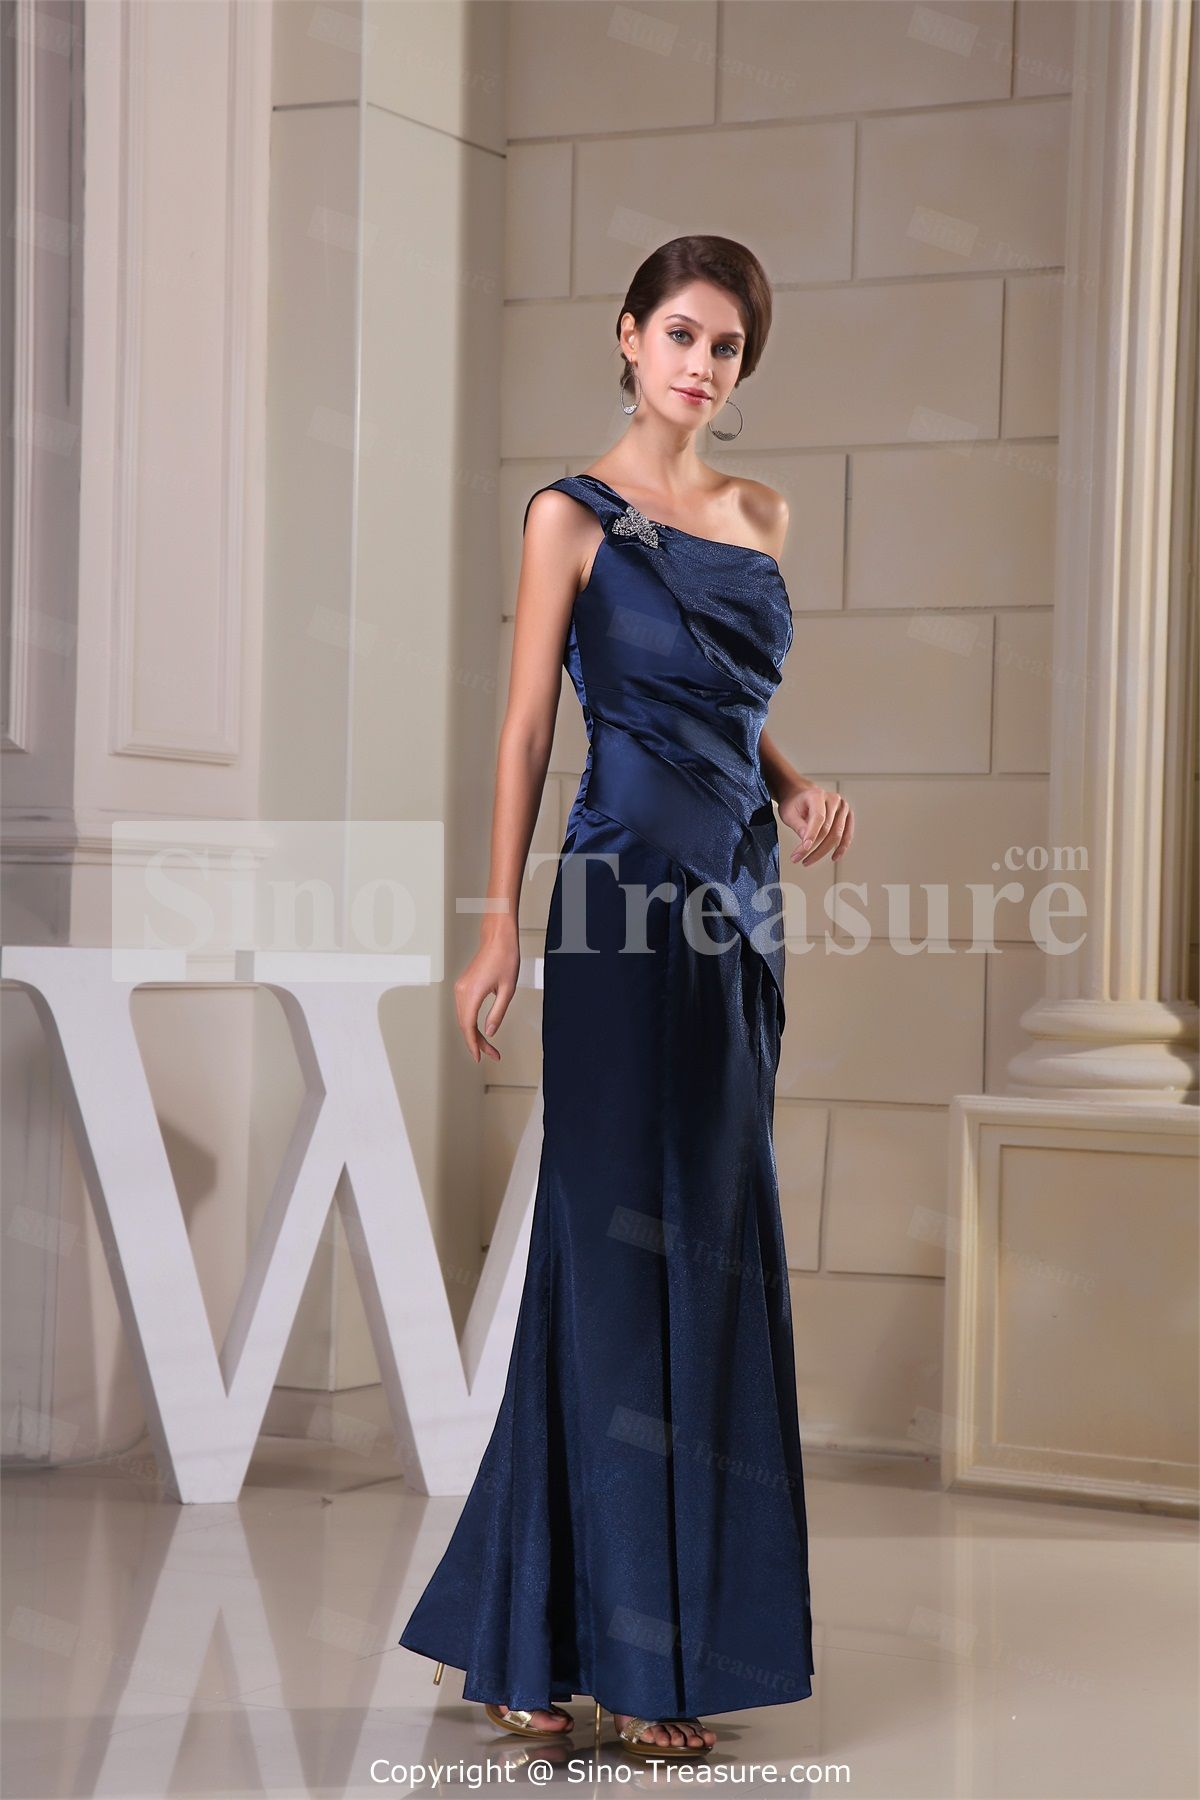 Dark Navy Fit And Flare Ankle Length Long Elastic Silk Like Satin Bridesmaid Dress I D Have My Mom Wear It